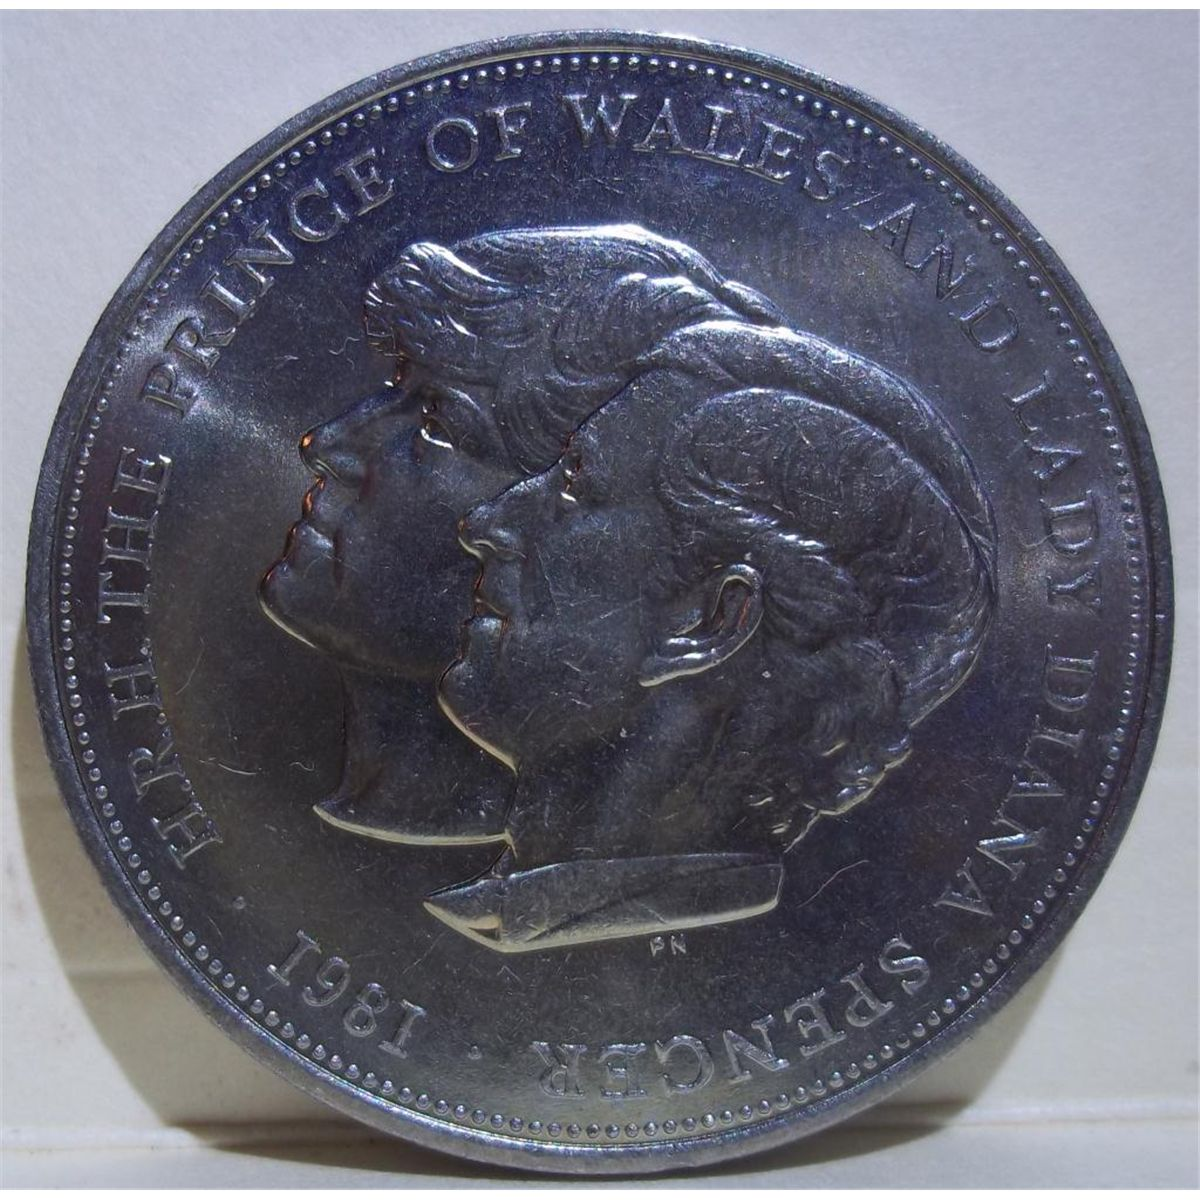 lady diana prince charles coin 1981